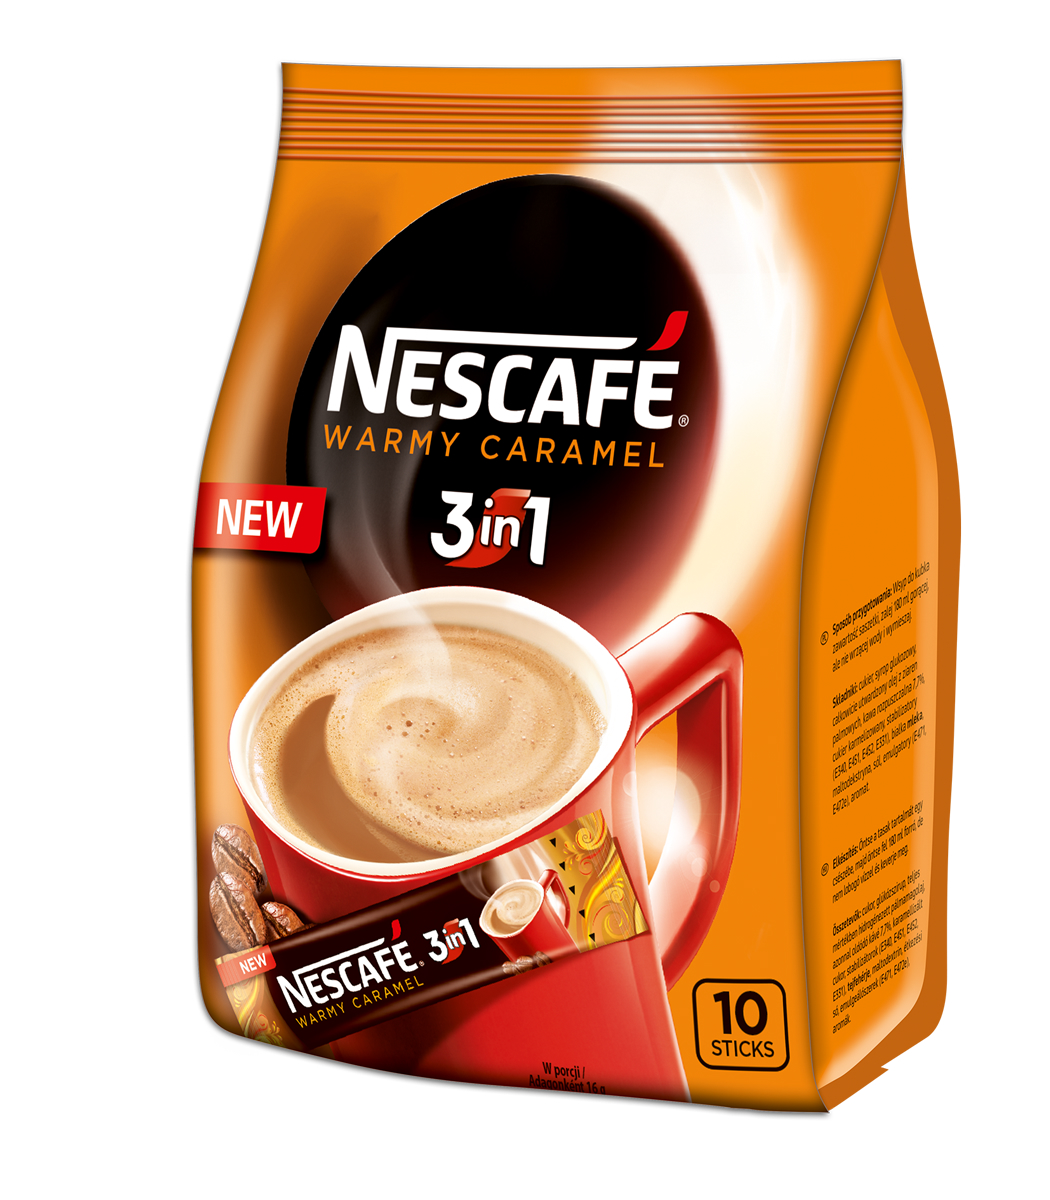 Nescafe Warmy Caramel 3in1 Instant Coffee 10 Sticks Bag